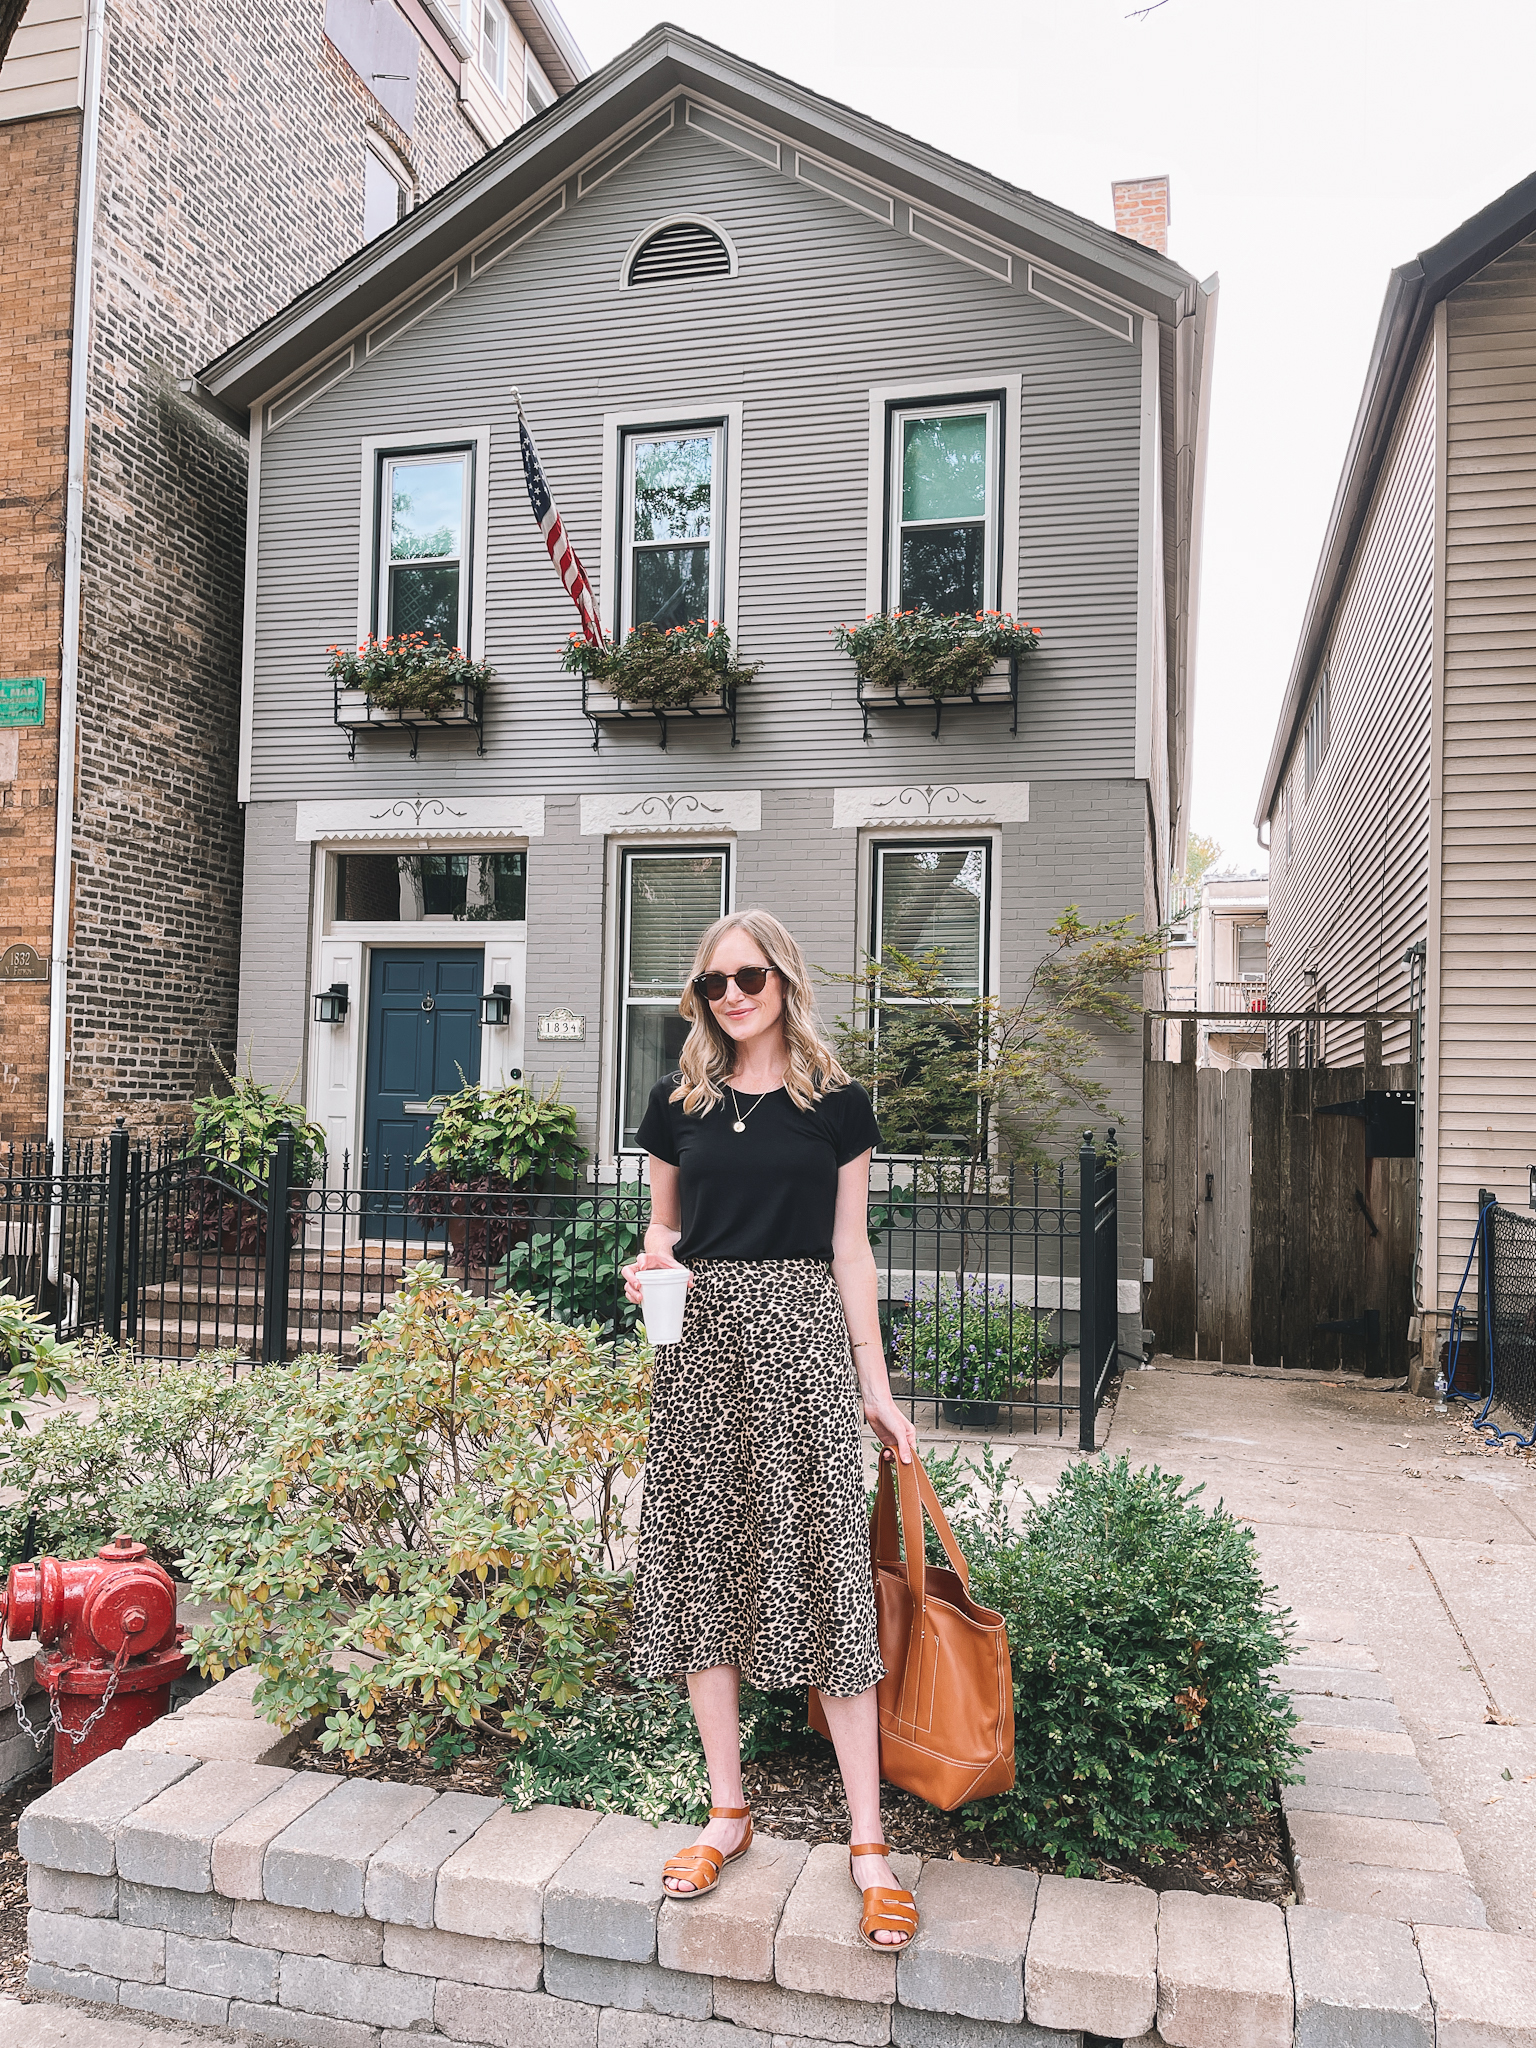 Leopard Slip Skirt outfit   What I Wore 9/24